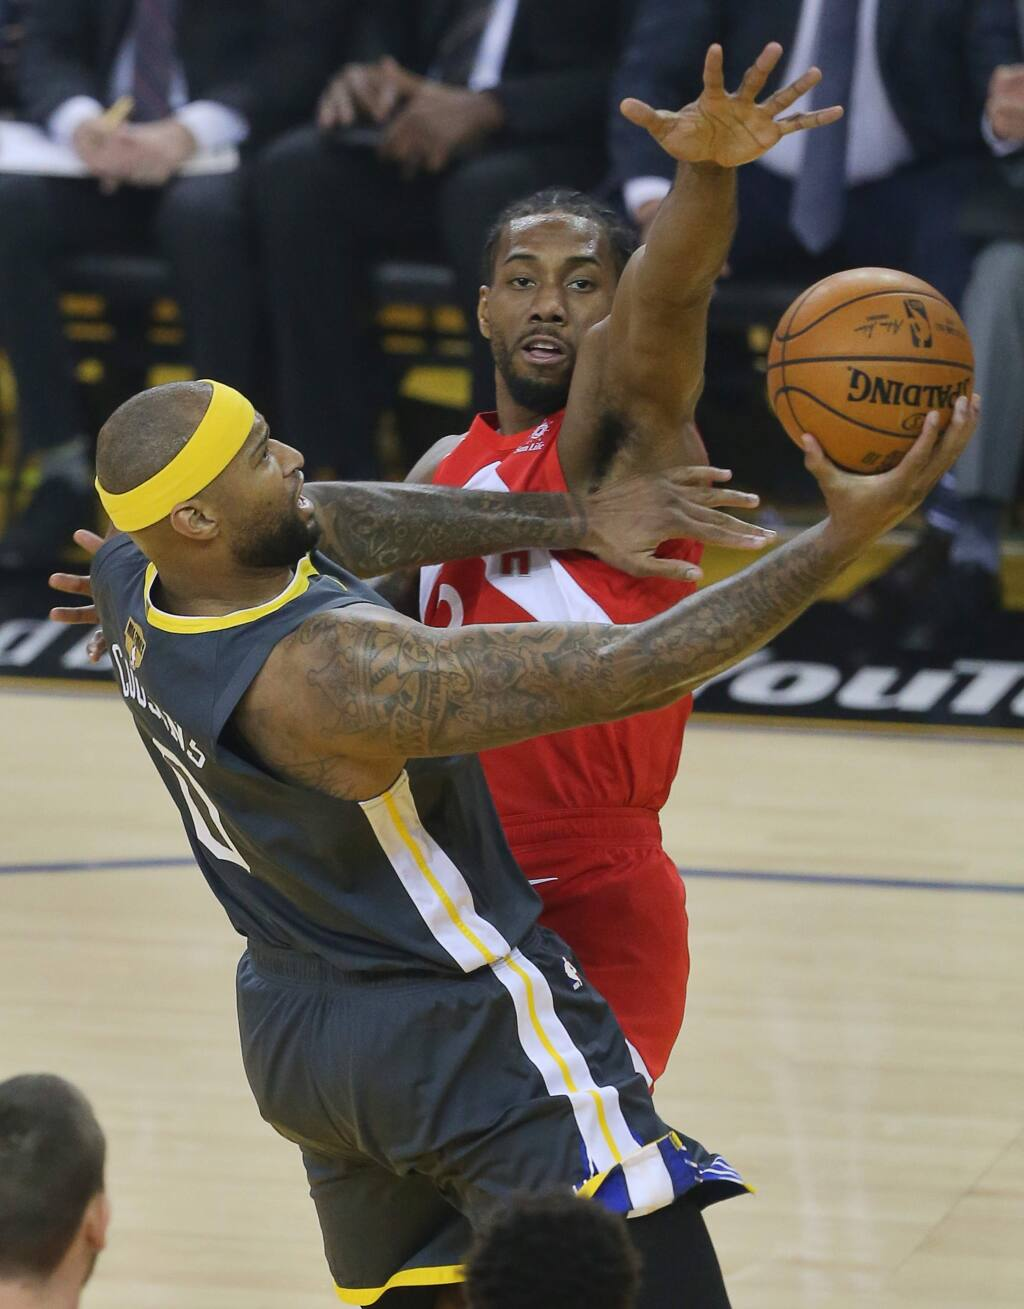 Golden State Warriors center DeMarcus Cousins lays the ball up against Toronto Raptors forward Kawhi Leonard during game 4 of the NBA Finals in Oakland on Friday, June 7, 2019. (Christopher Chung/ The Press Democrat)